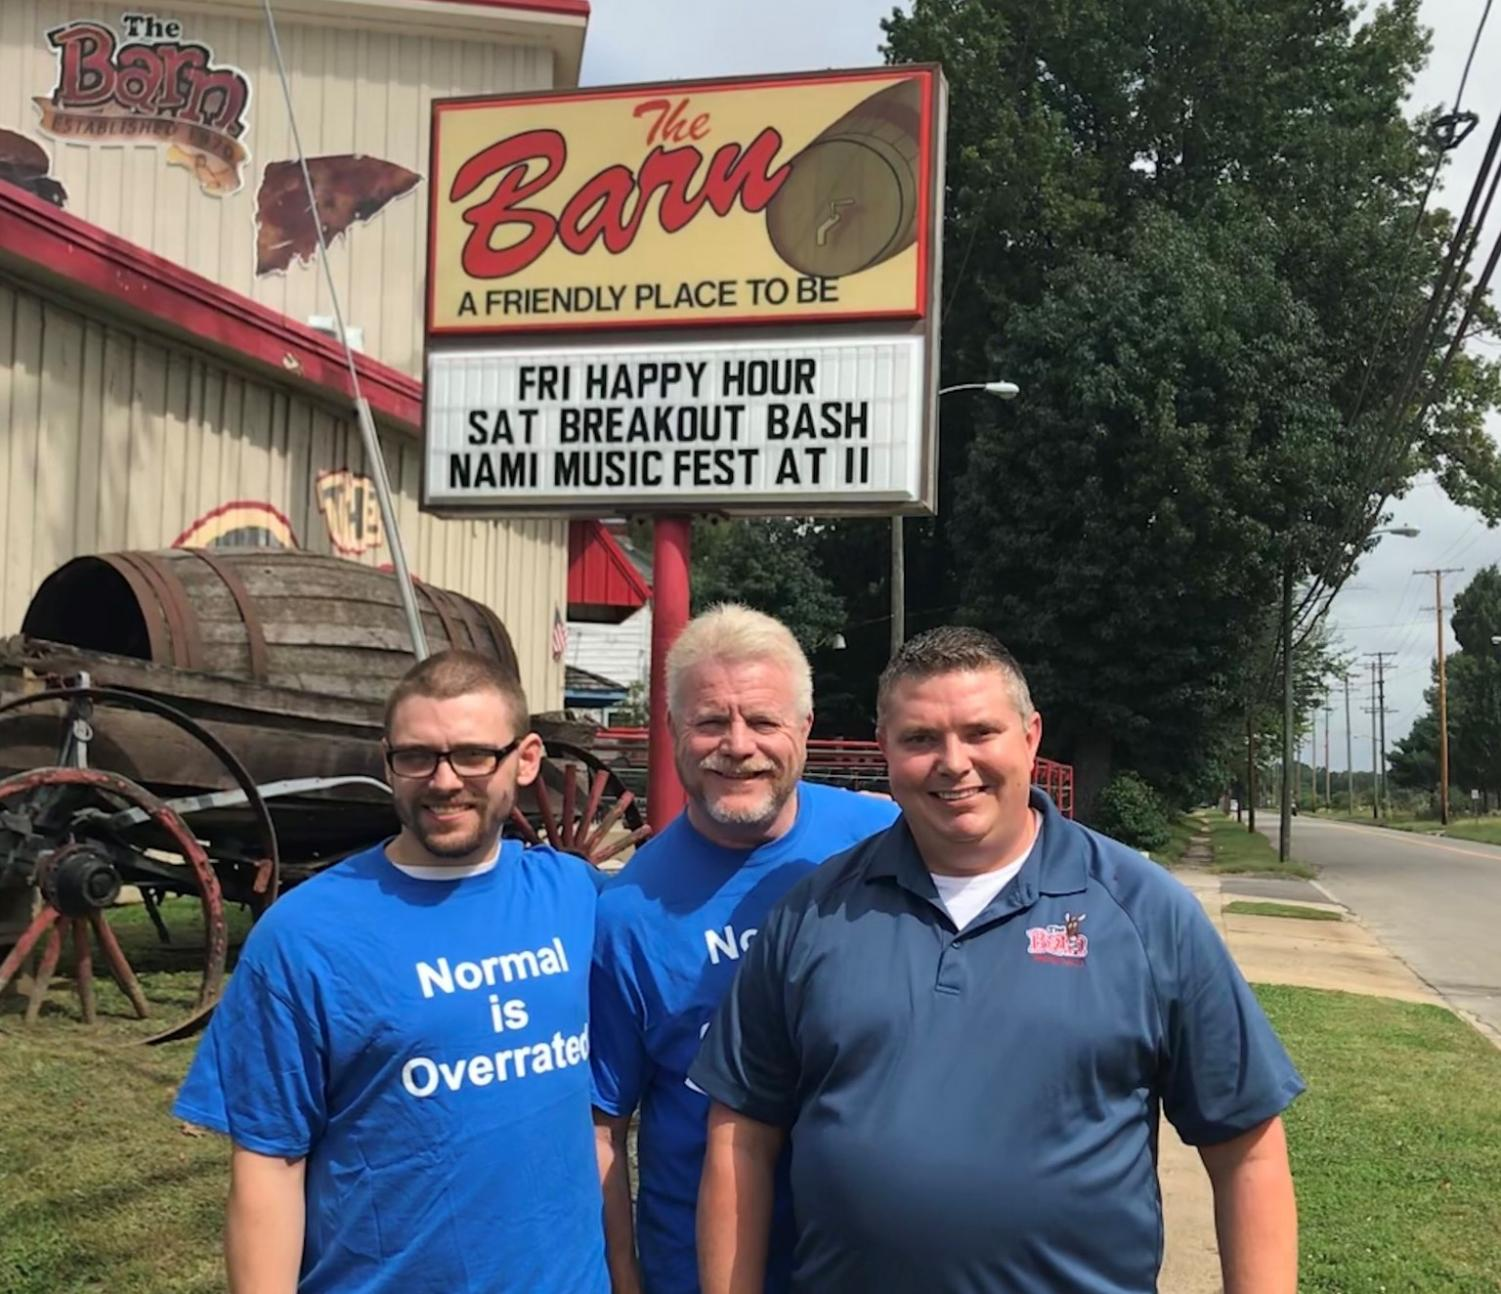 Anthony Hannan (left), Paul Quinn (middle) and Jim Watson (left) pose in front of The Barn sign that advertises the Breakout Bash happening Saturday. Photo provided by Paul Quinn before the 2018 Breakout Bash.